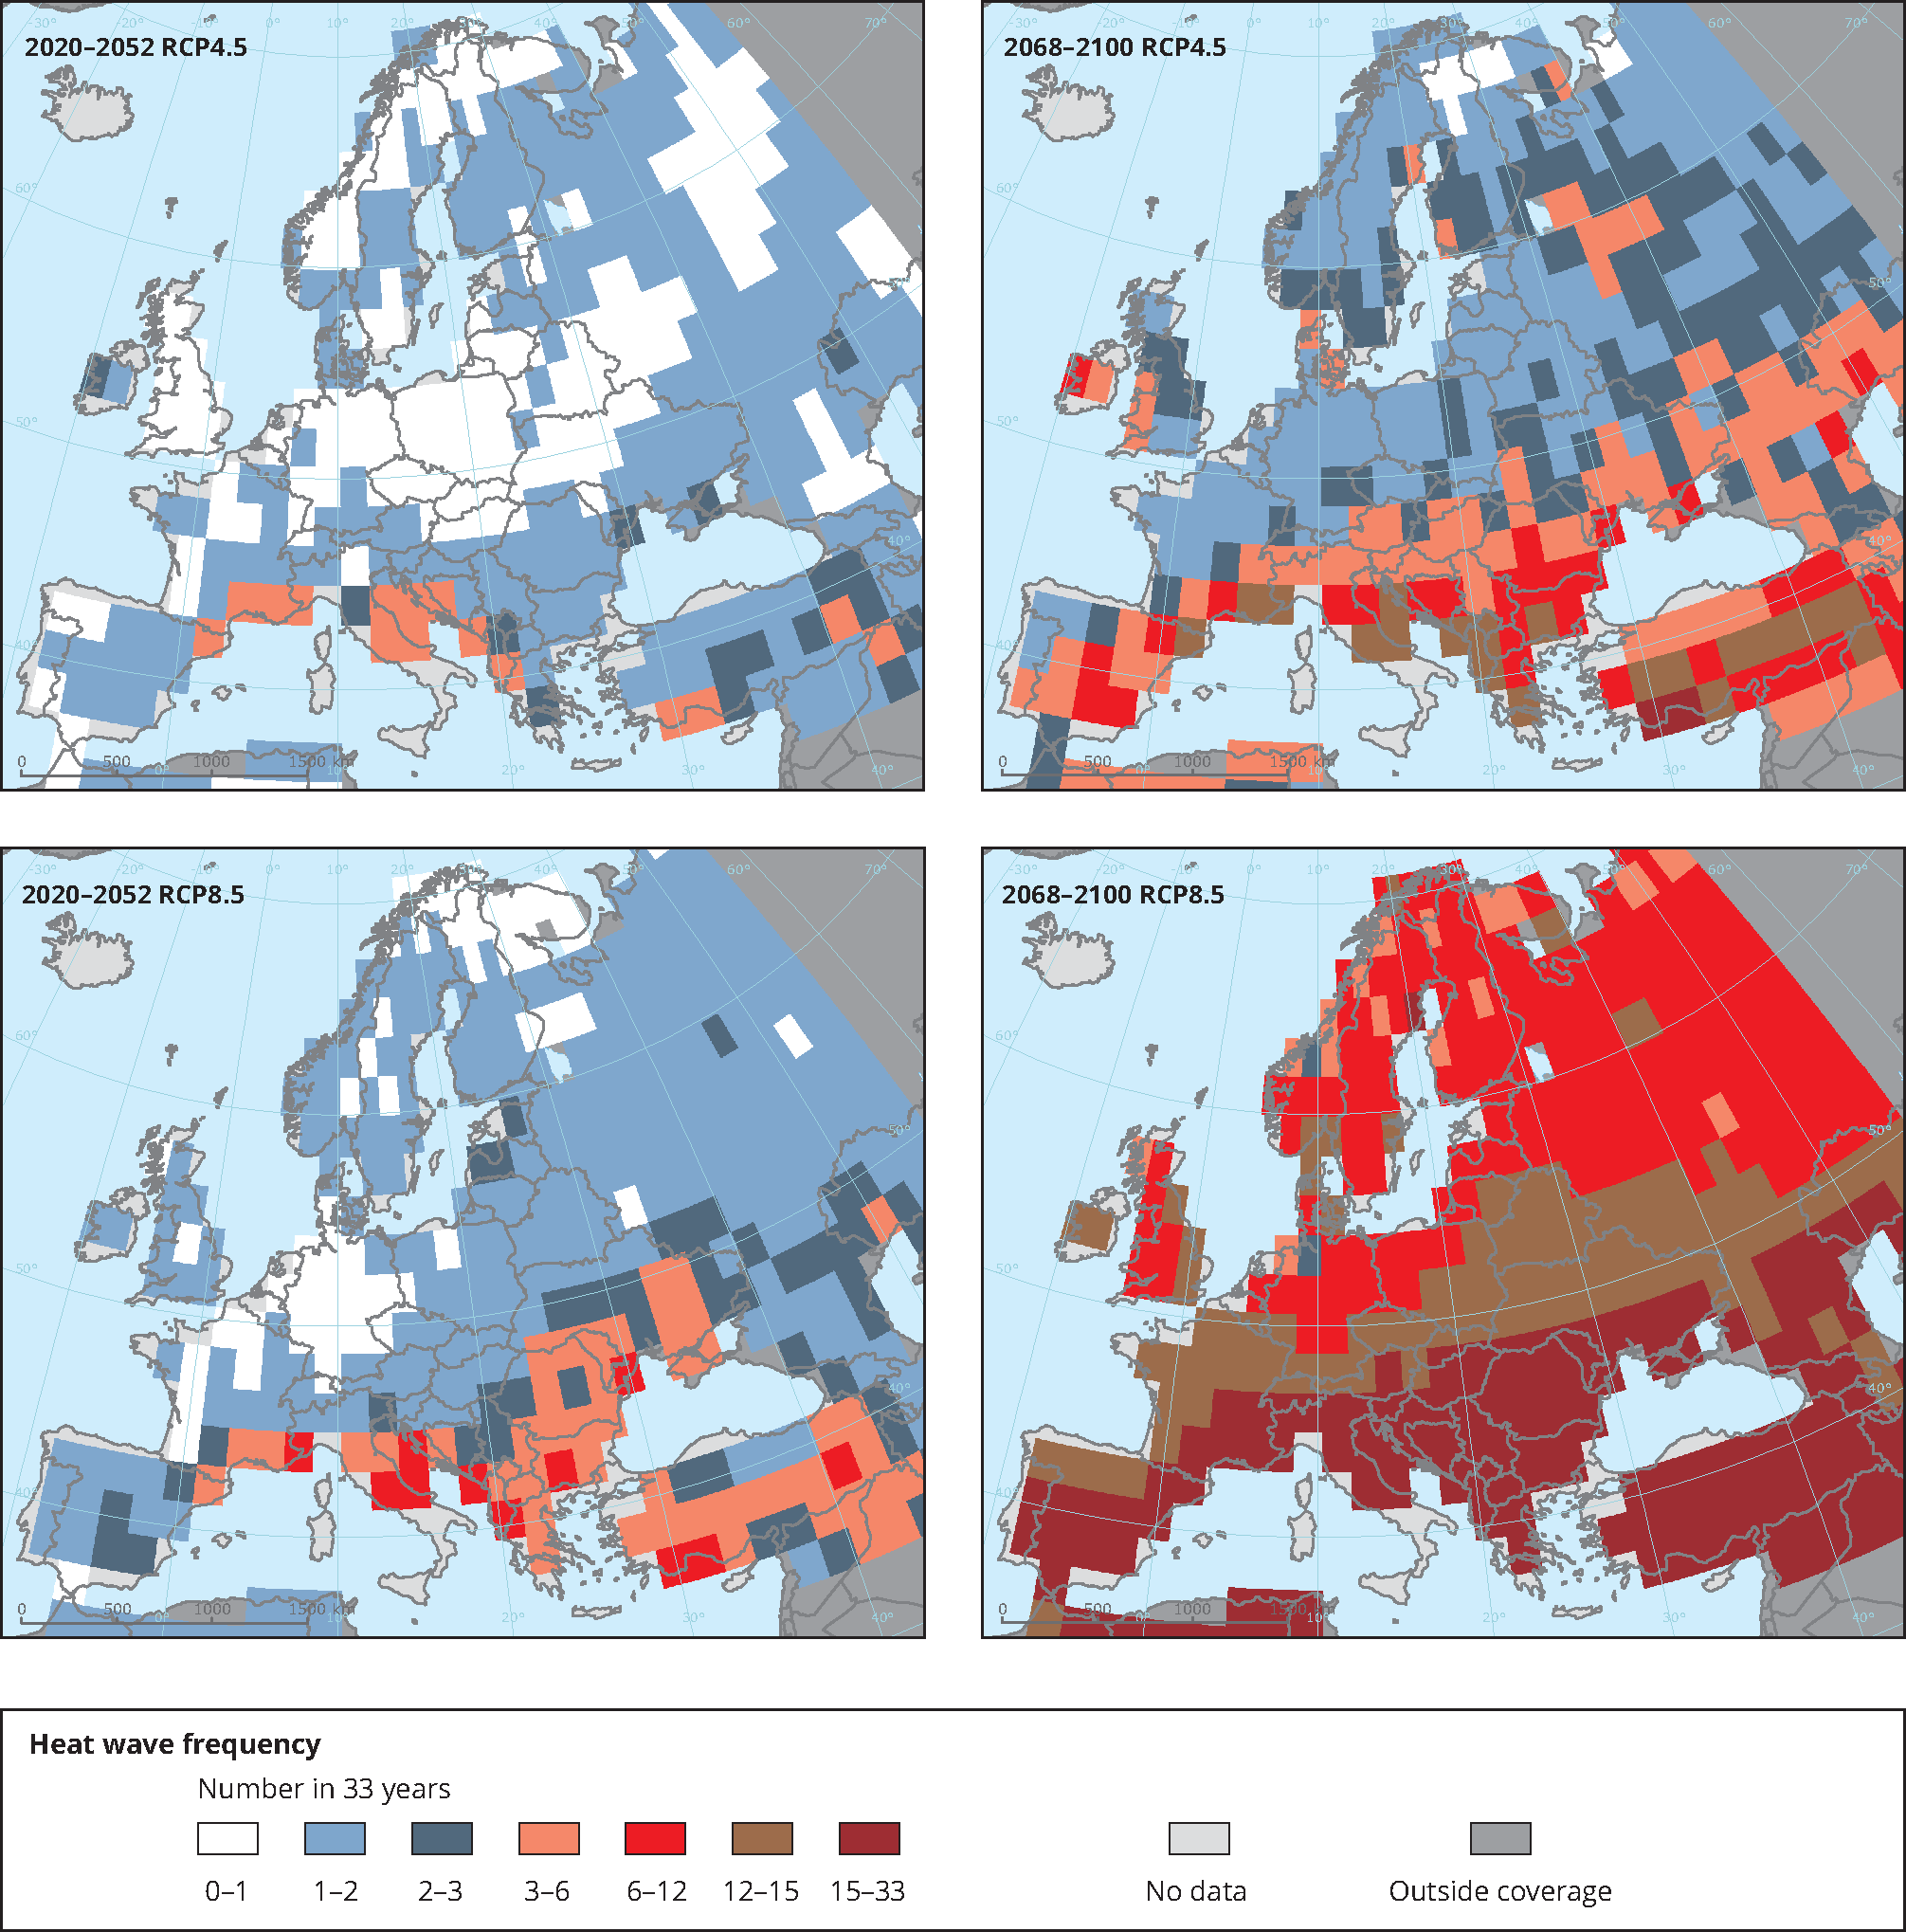 Number of extreme heat waves in future climates under two different climate forcing scenarios